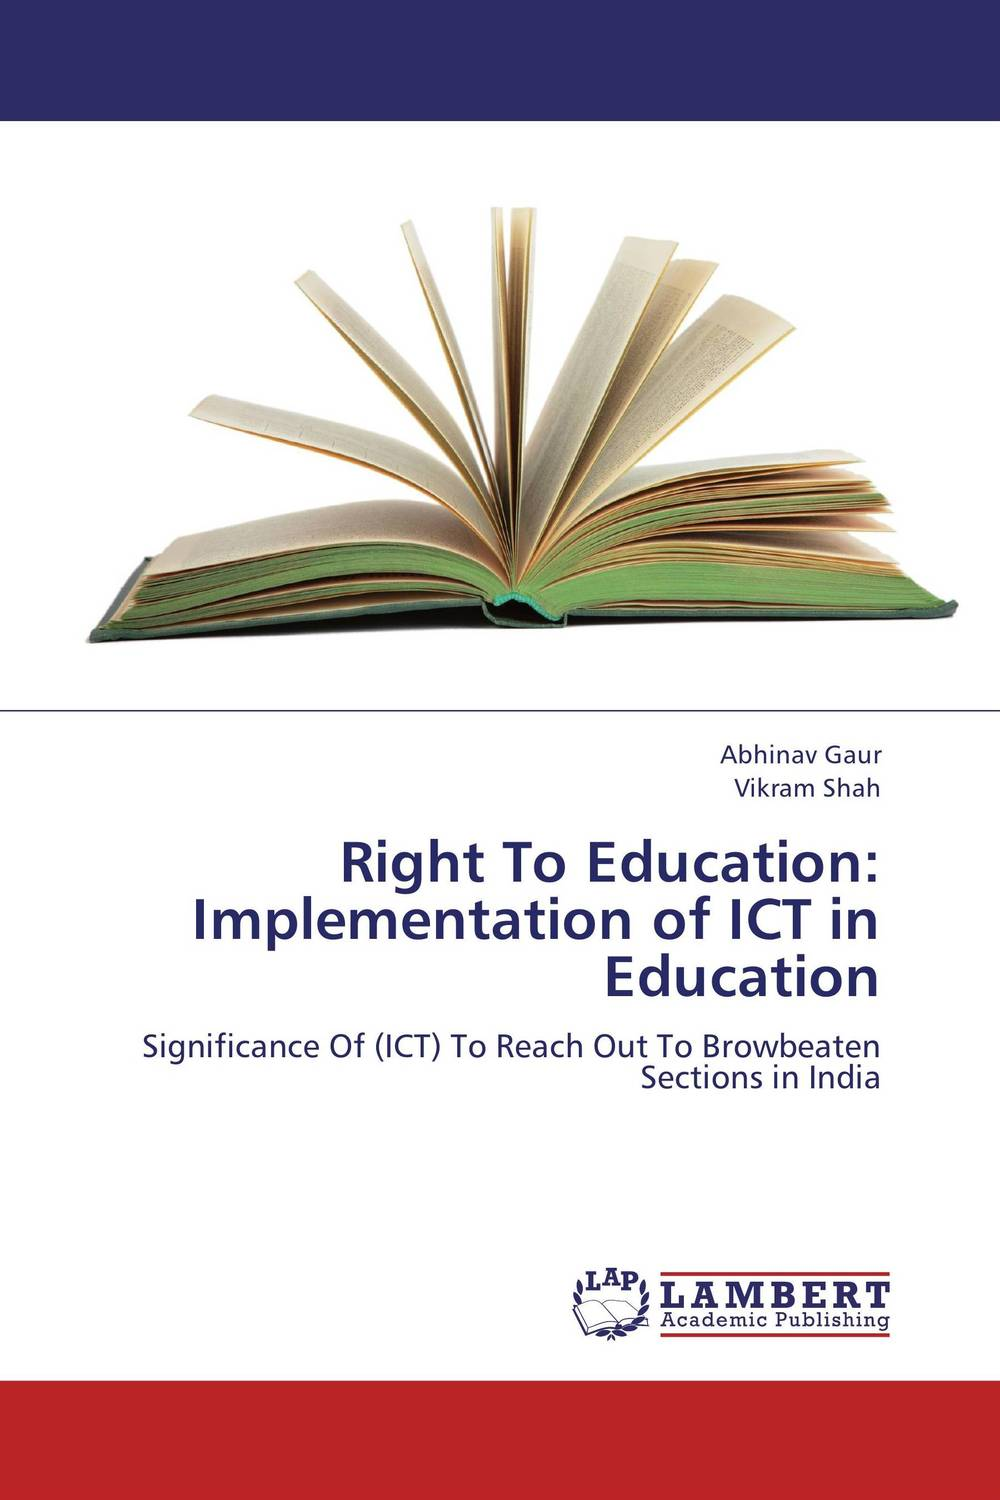 Right To Education: Implementation of ICT in Education expansion of relevant education project in papua new guinea